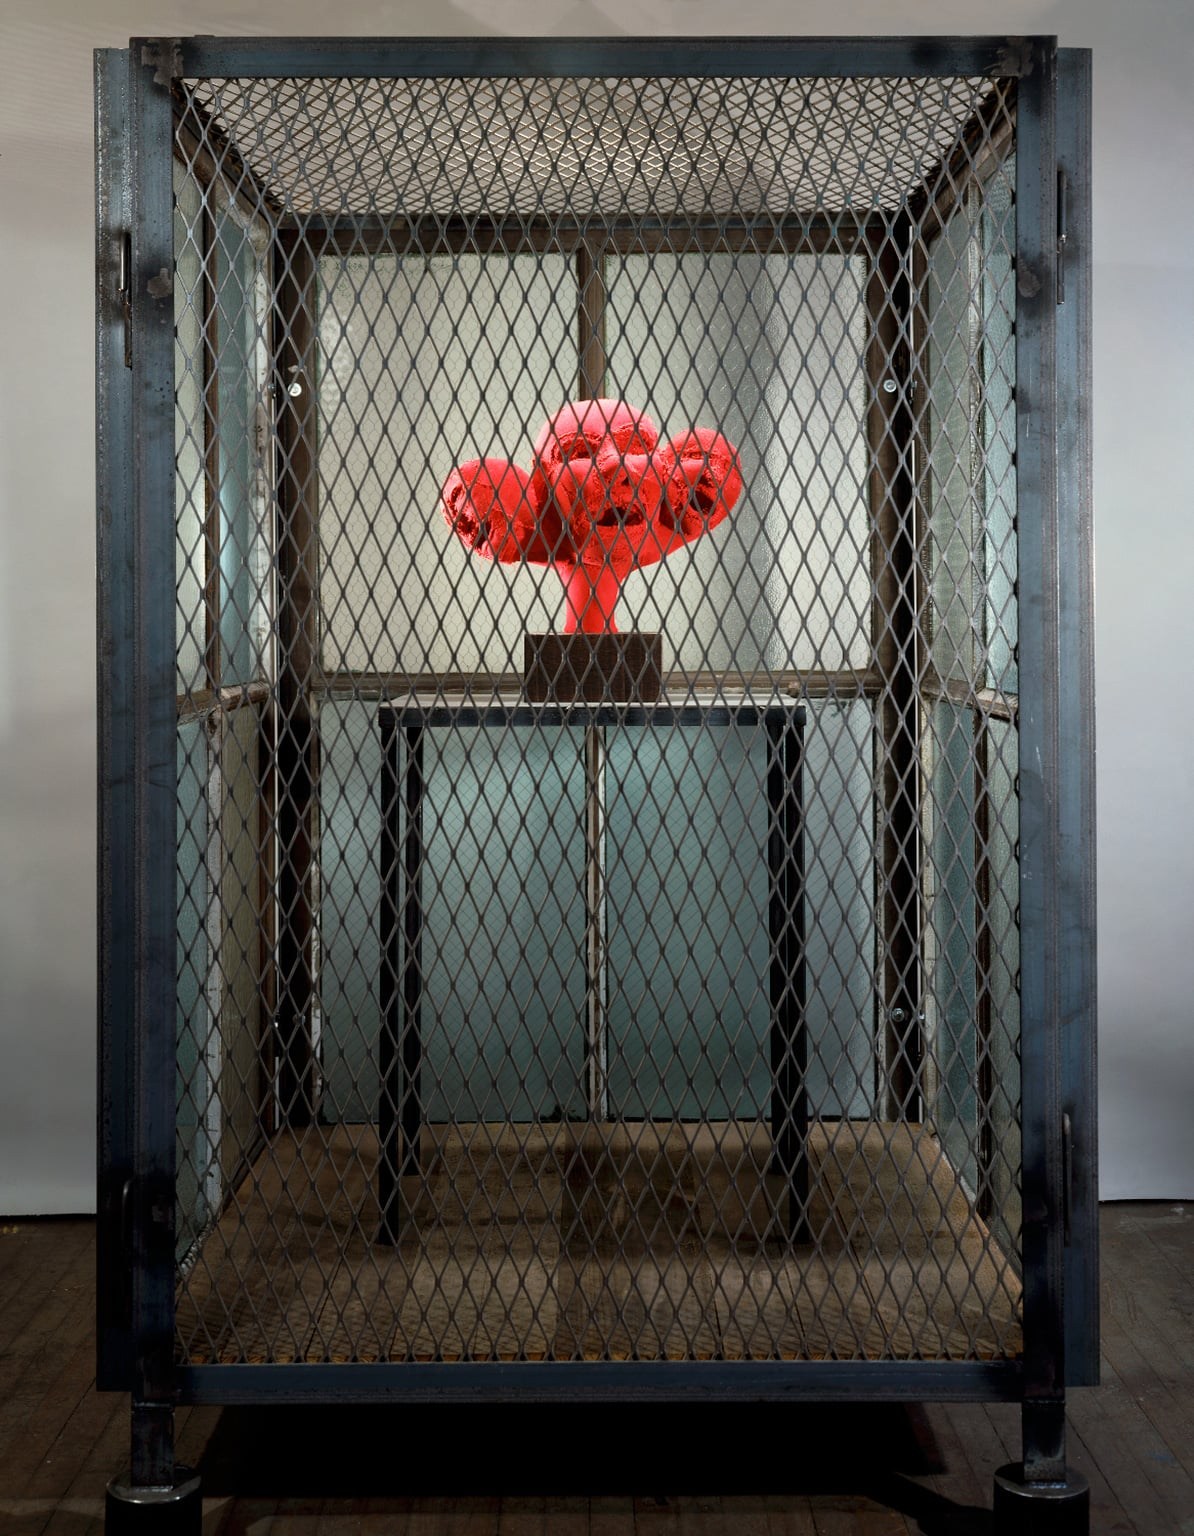 4. Louise Bourgeois, Southampton City Art Gallery - Louise Bourgeois, CELL XIV, 2000. © The Easton Foundation/Licensed by DACS